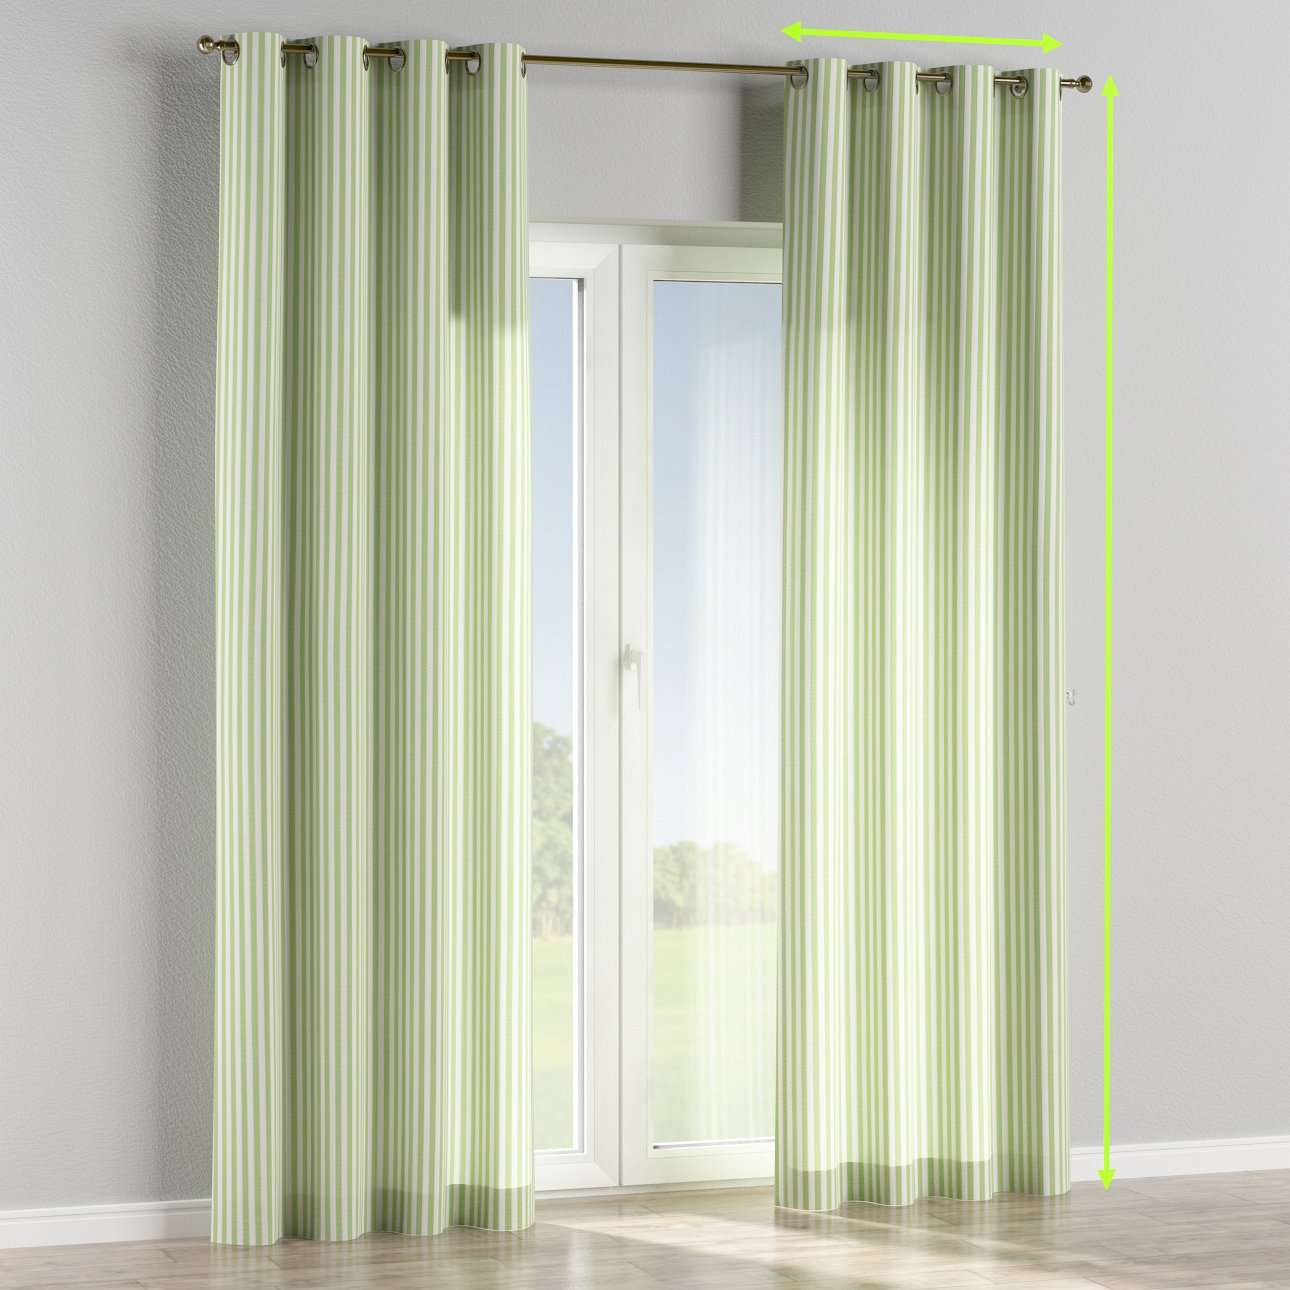 Eyelet lined curtains in collection Quadro, fabric: 136-35